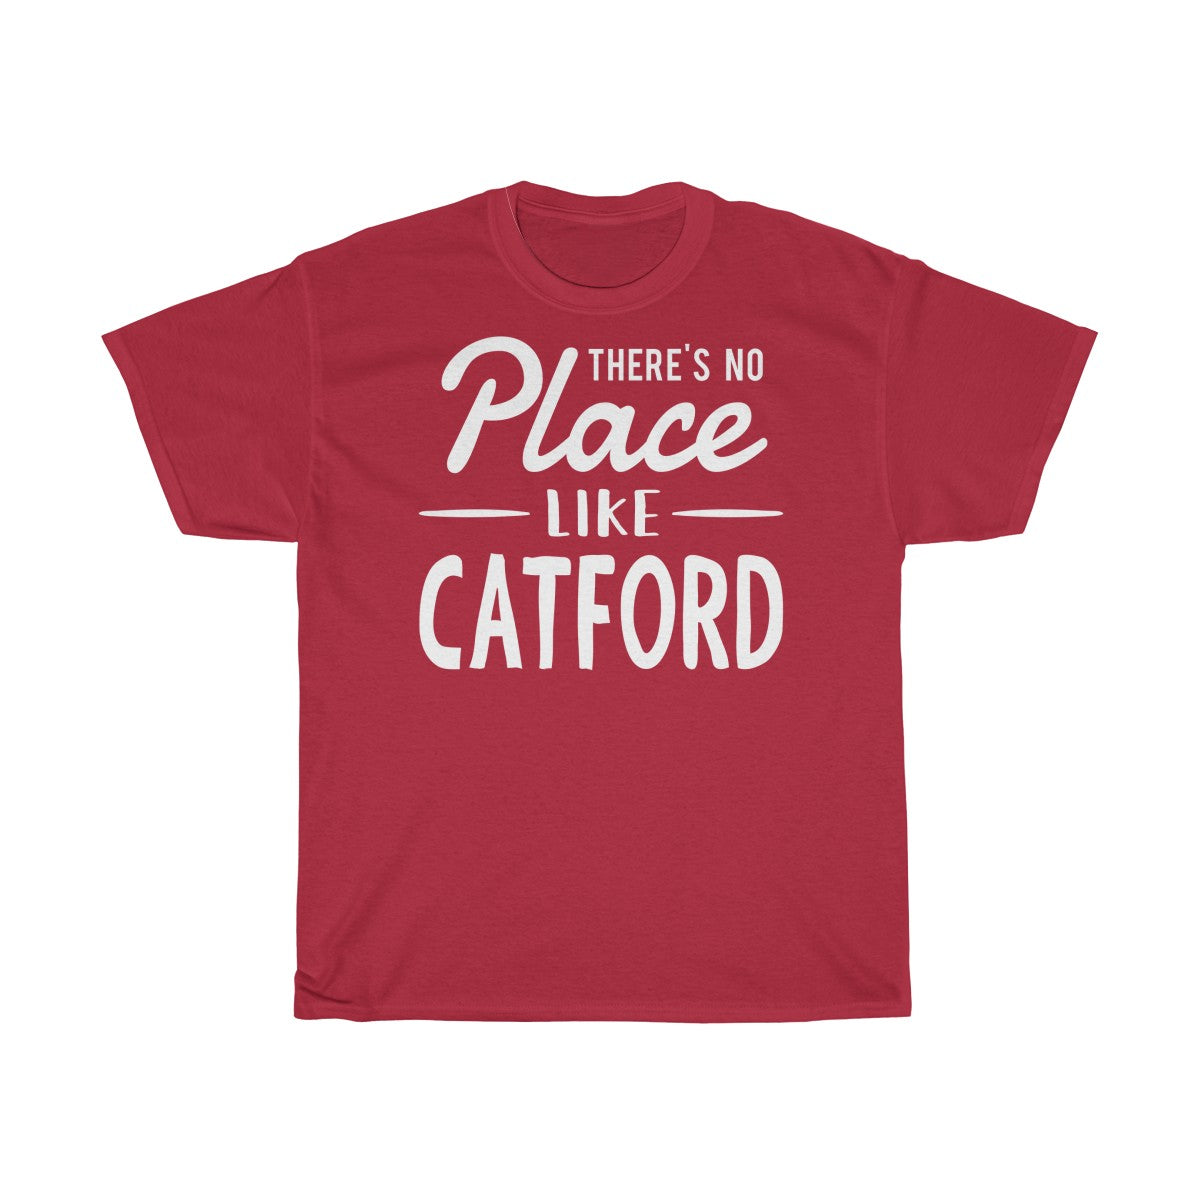 There's No Place Like Catford Unisex T-Shirt